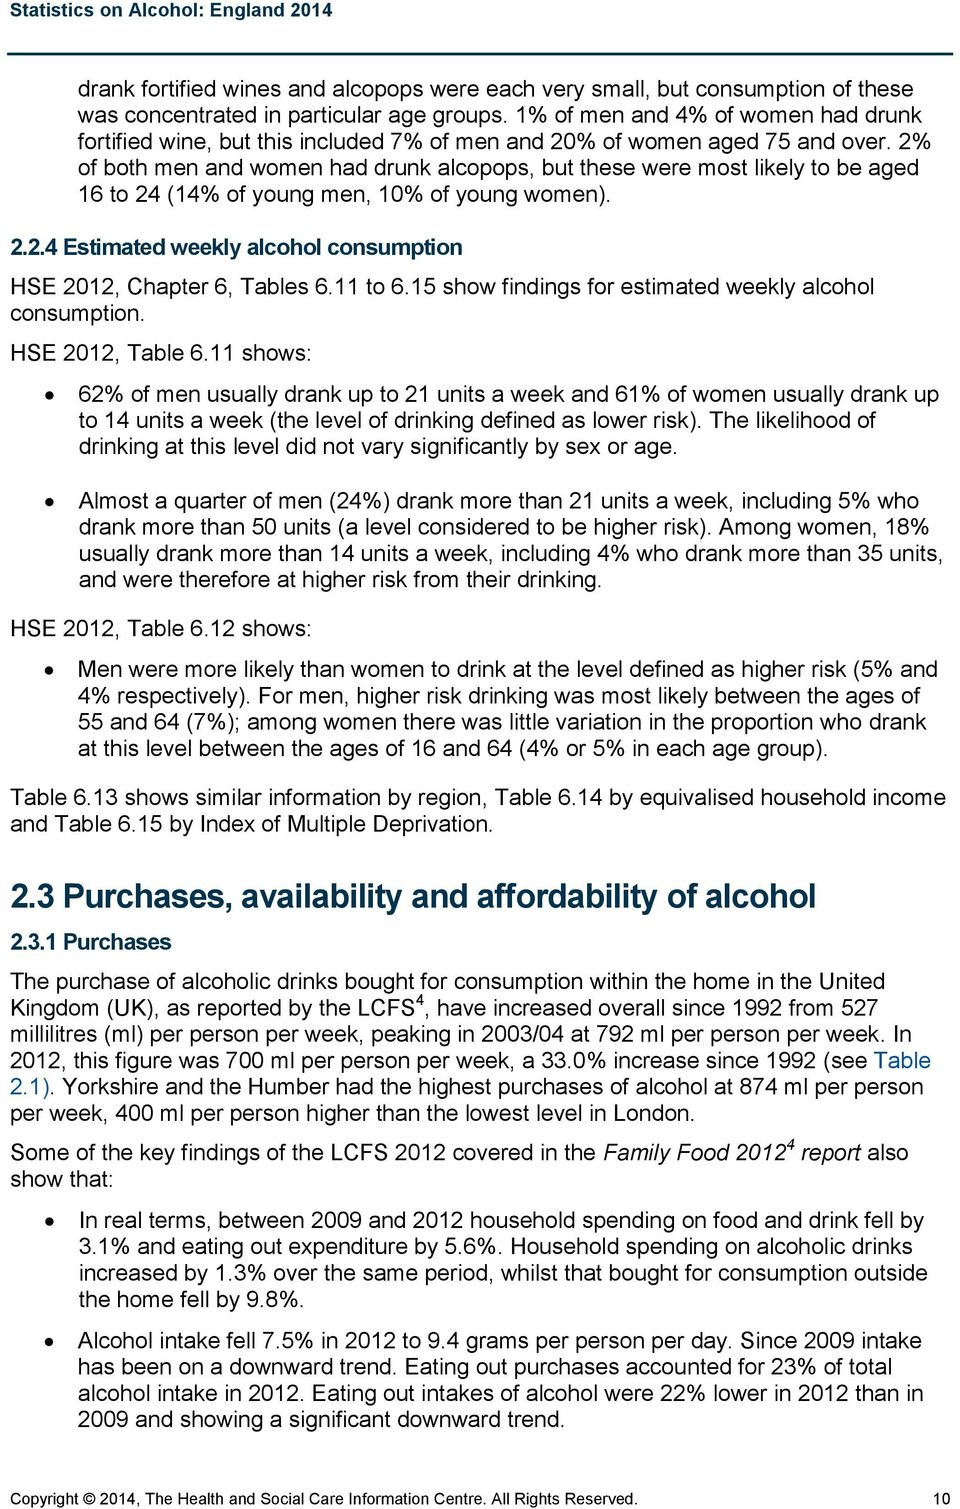 2% of both men and women had drunk alcopops, but these were most likely to be aged 16 to 24 (14% of young men, 10% of young women). 2.2.4 Estimated weekly alcohol consumption HSE 2012, Chapter 6, Tables 6.